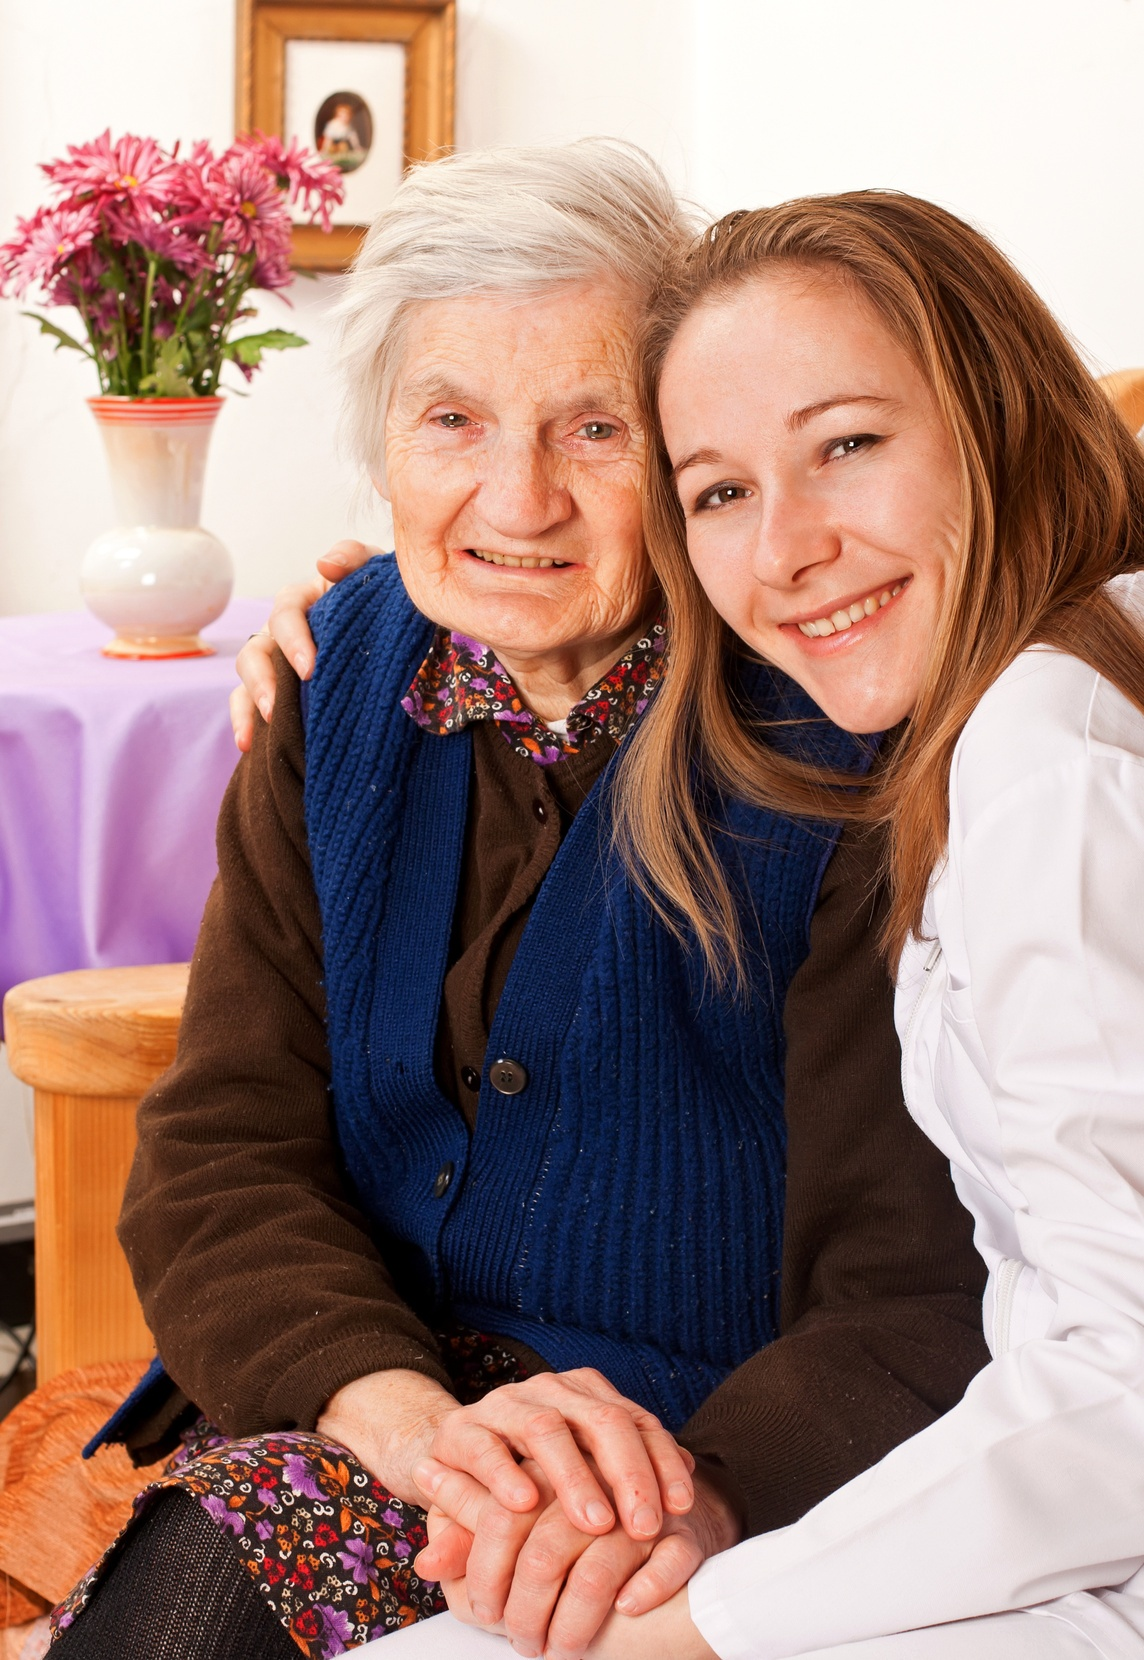 Caregiver and Elderly Woman